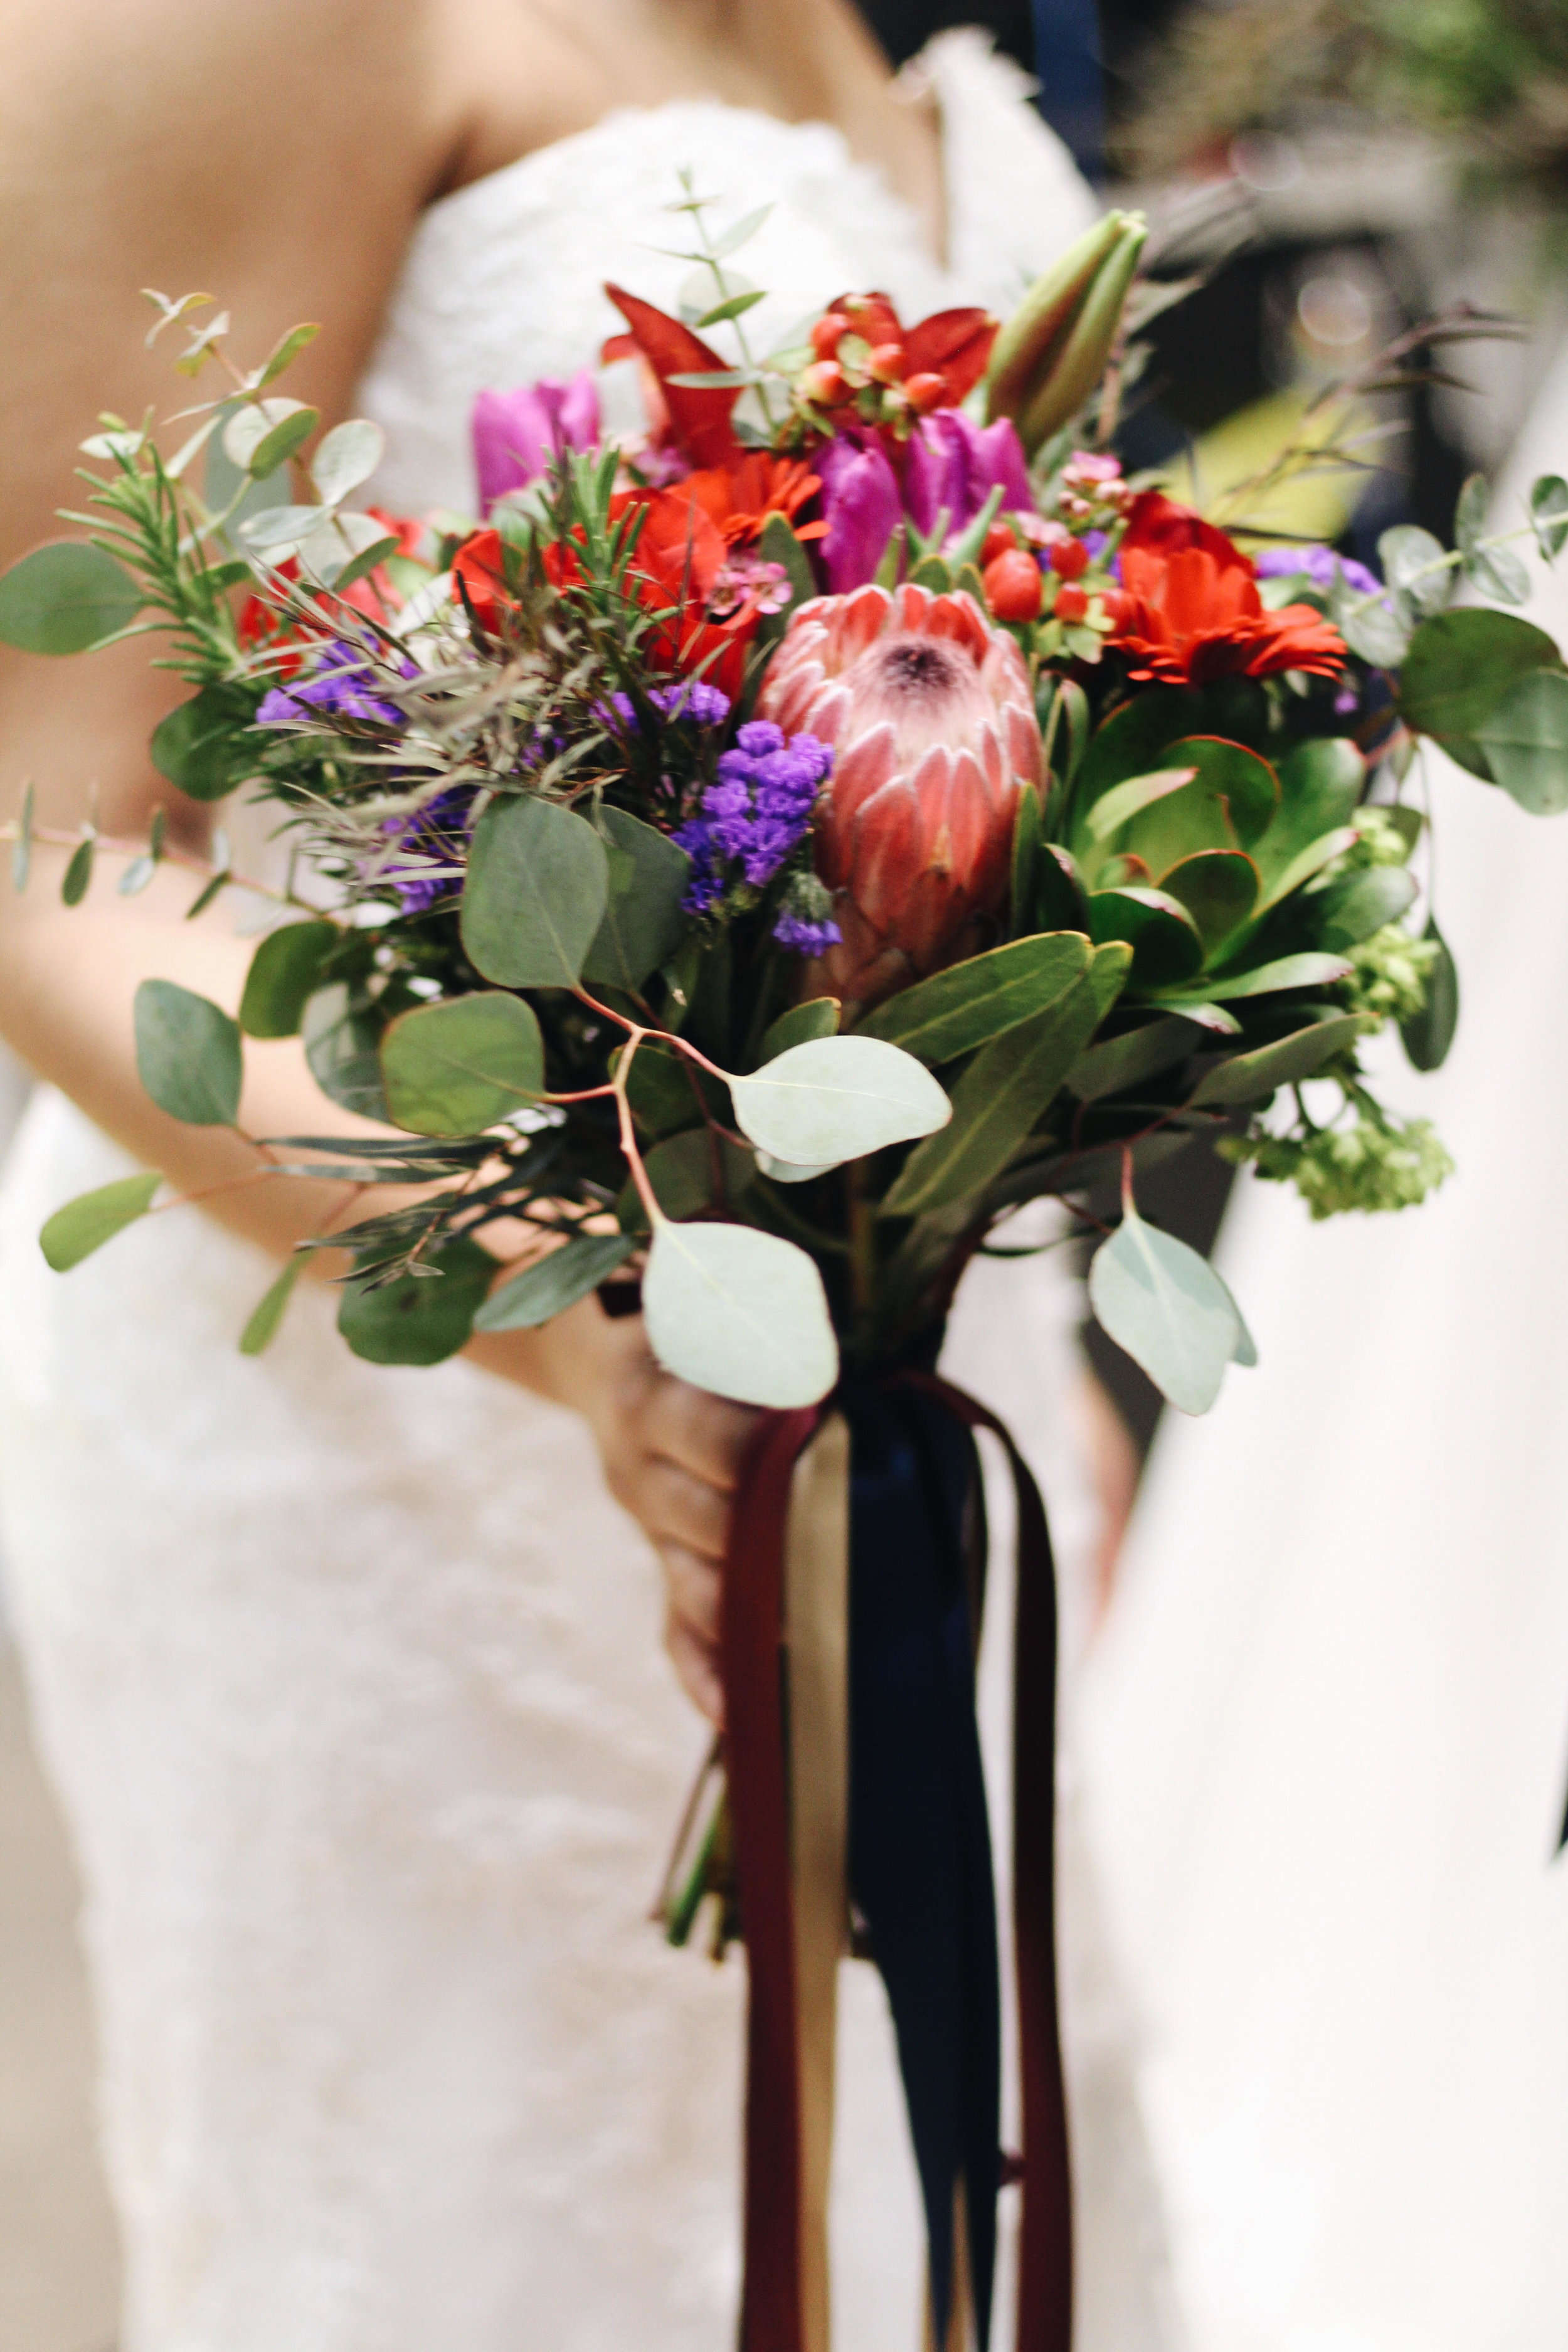 Wedding Bouquets Wedding Bouquet by Blue Ivy Flowers, Chattanooga, TN